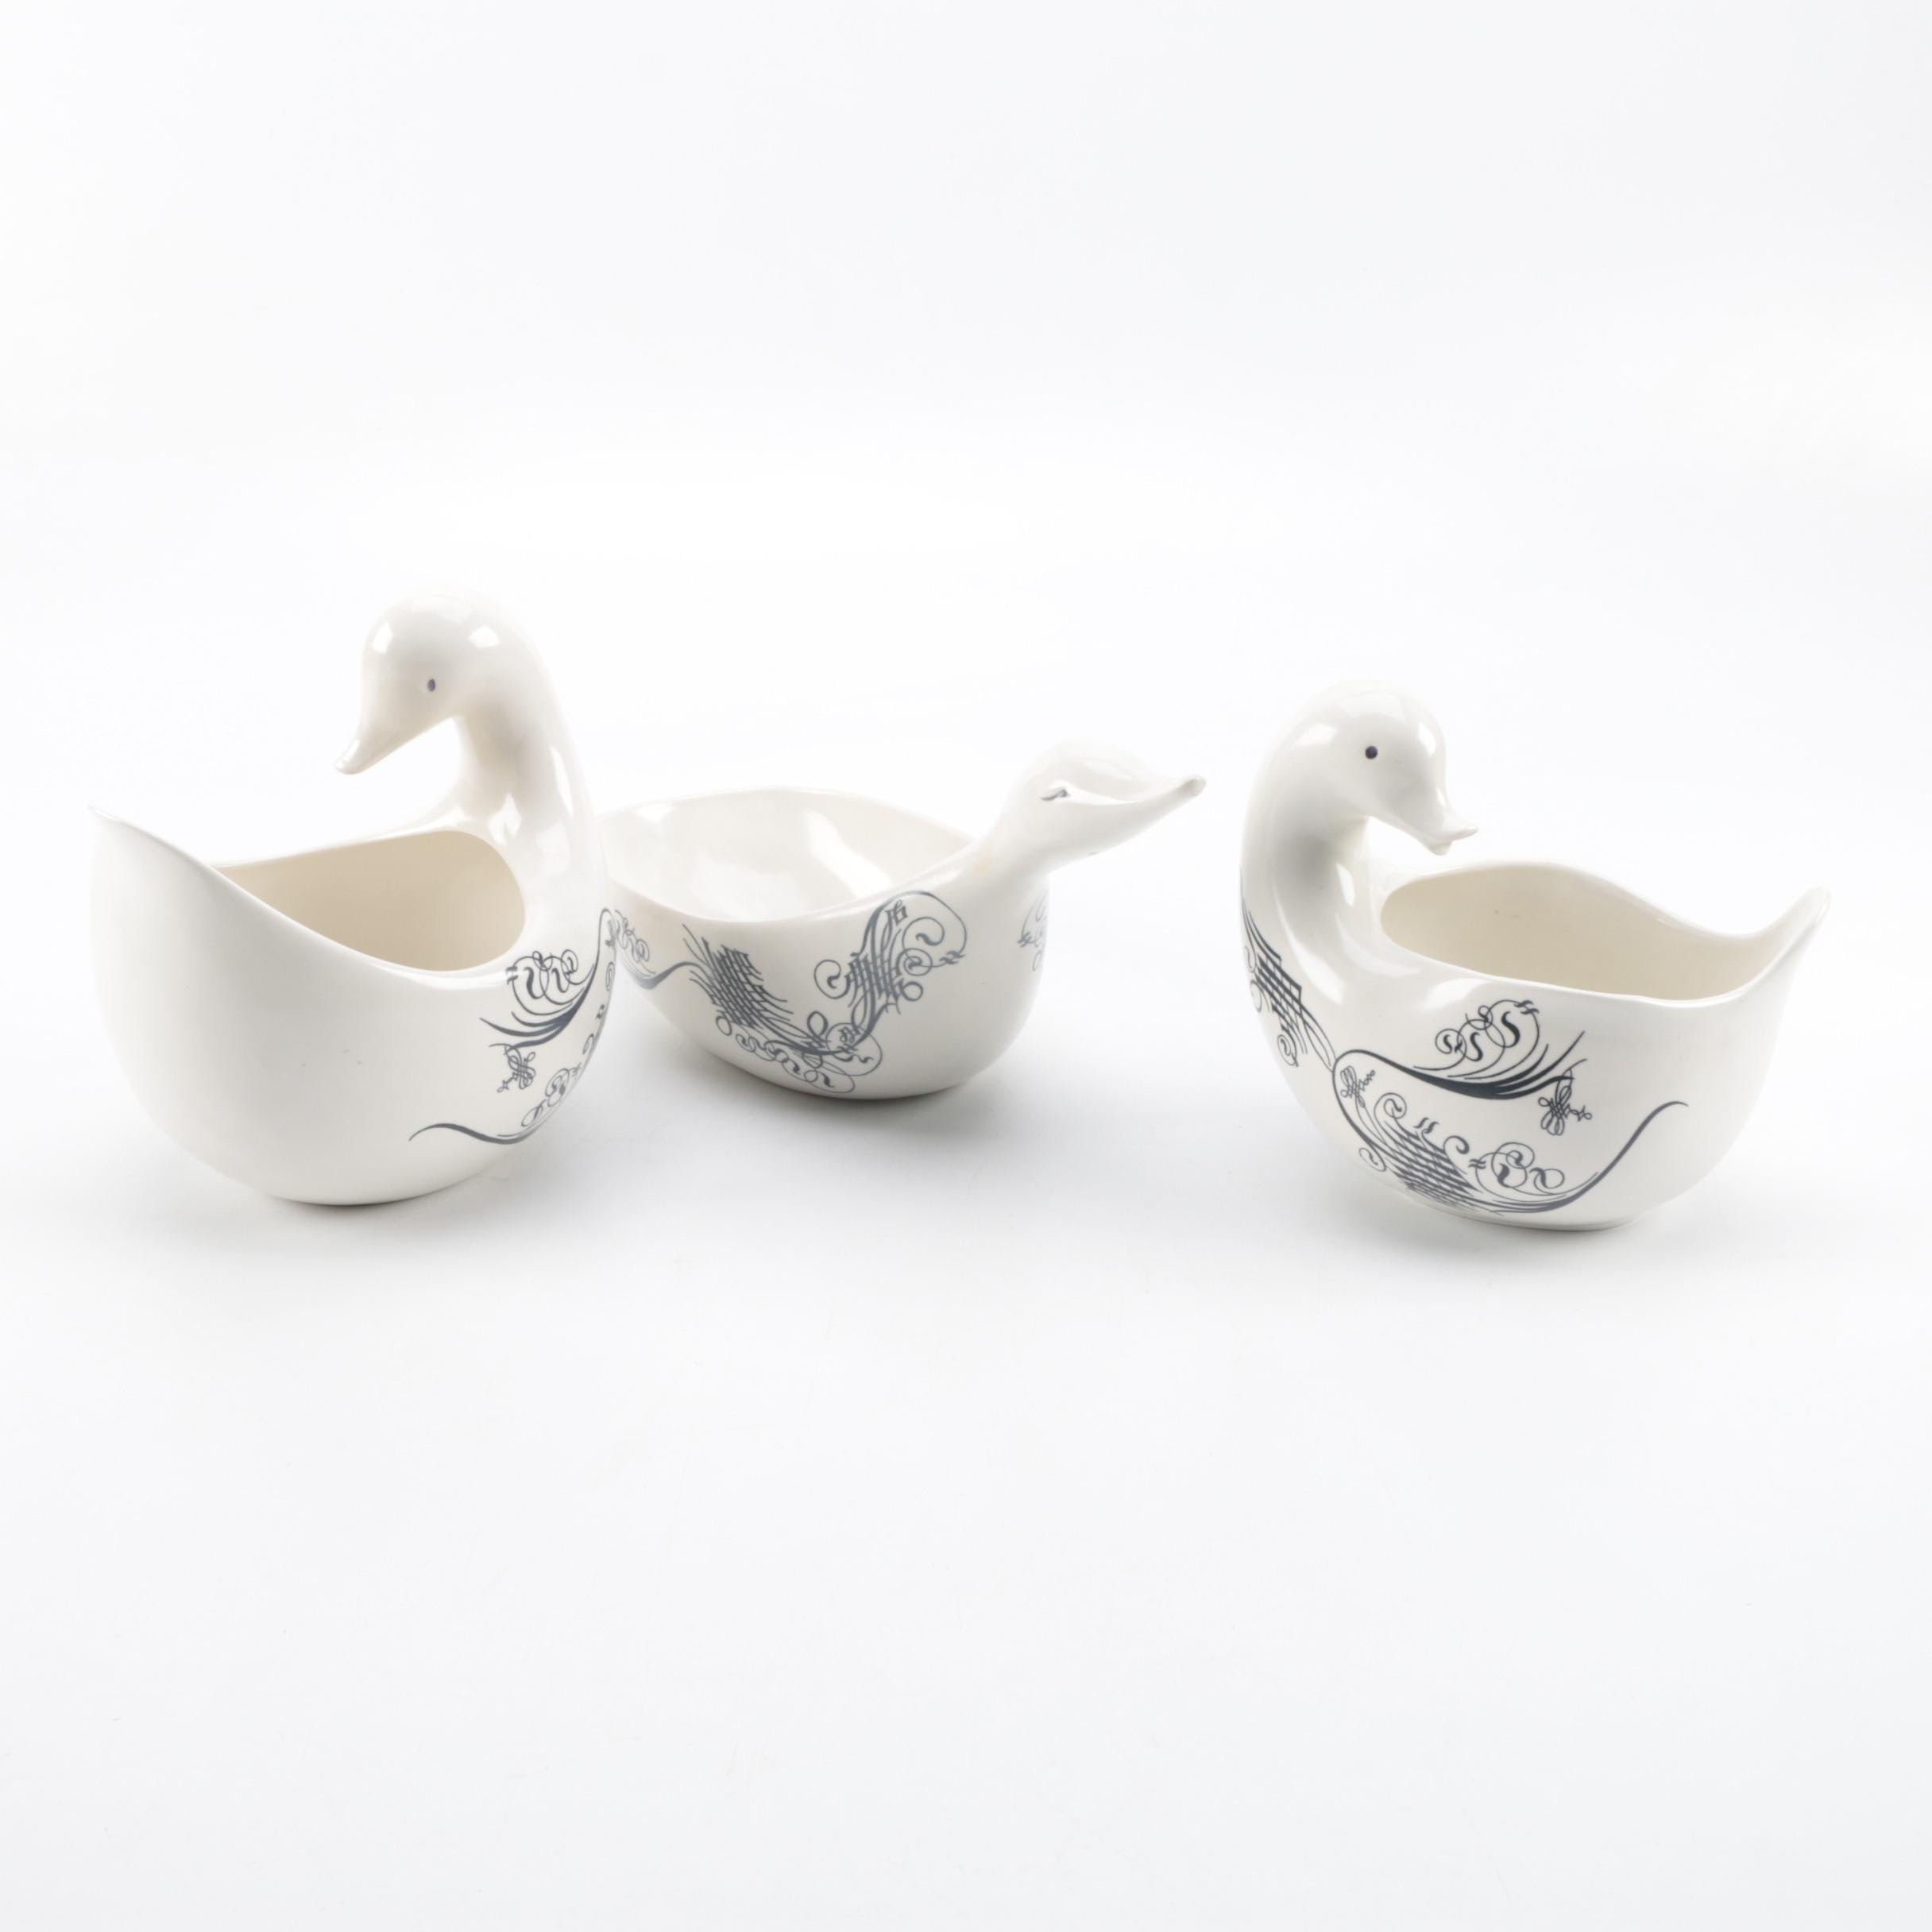 Eva Zeisel Ironstone Bird Shaped Dishes ...